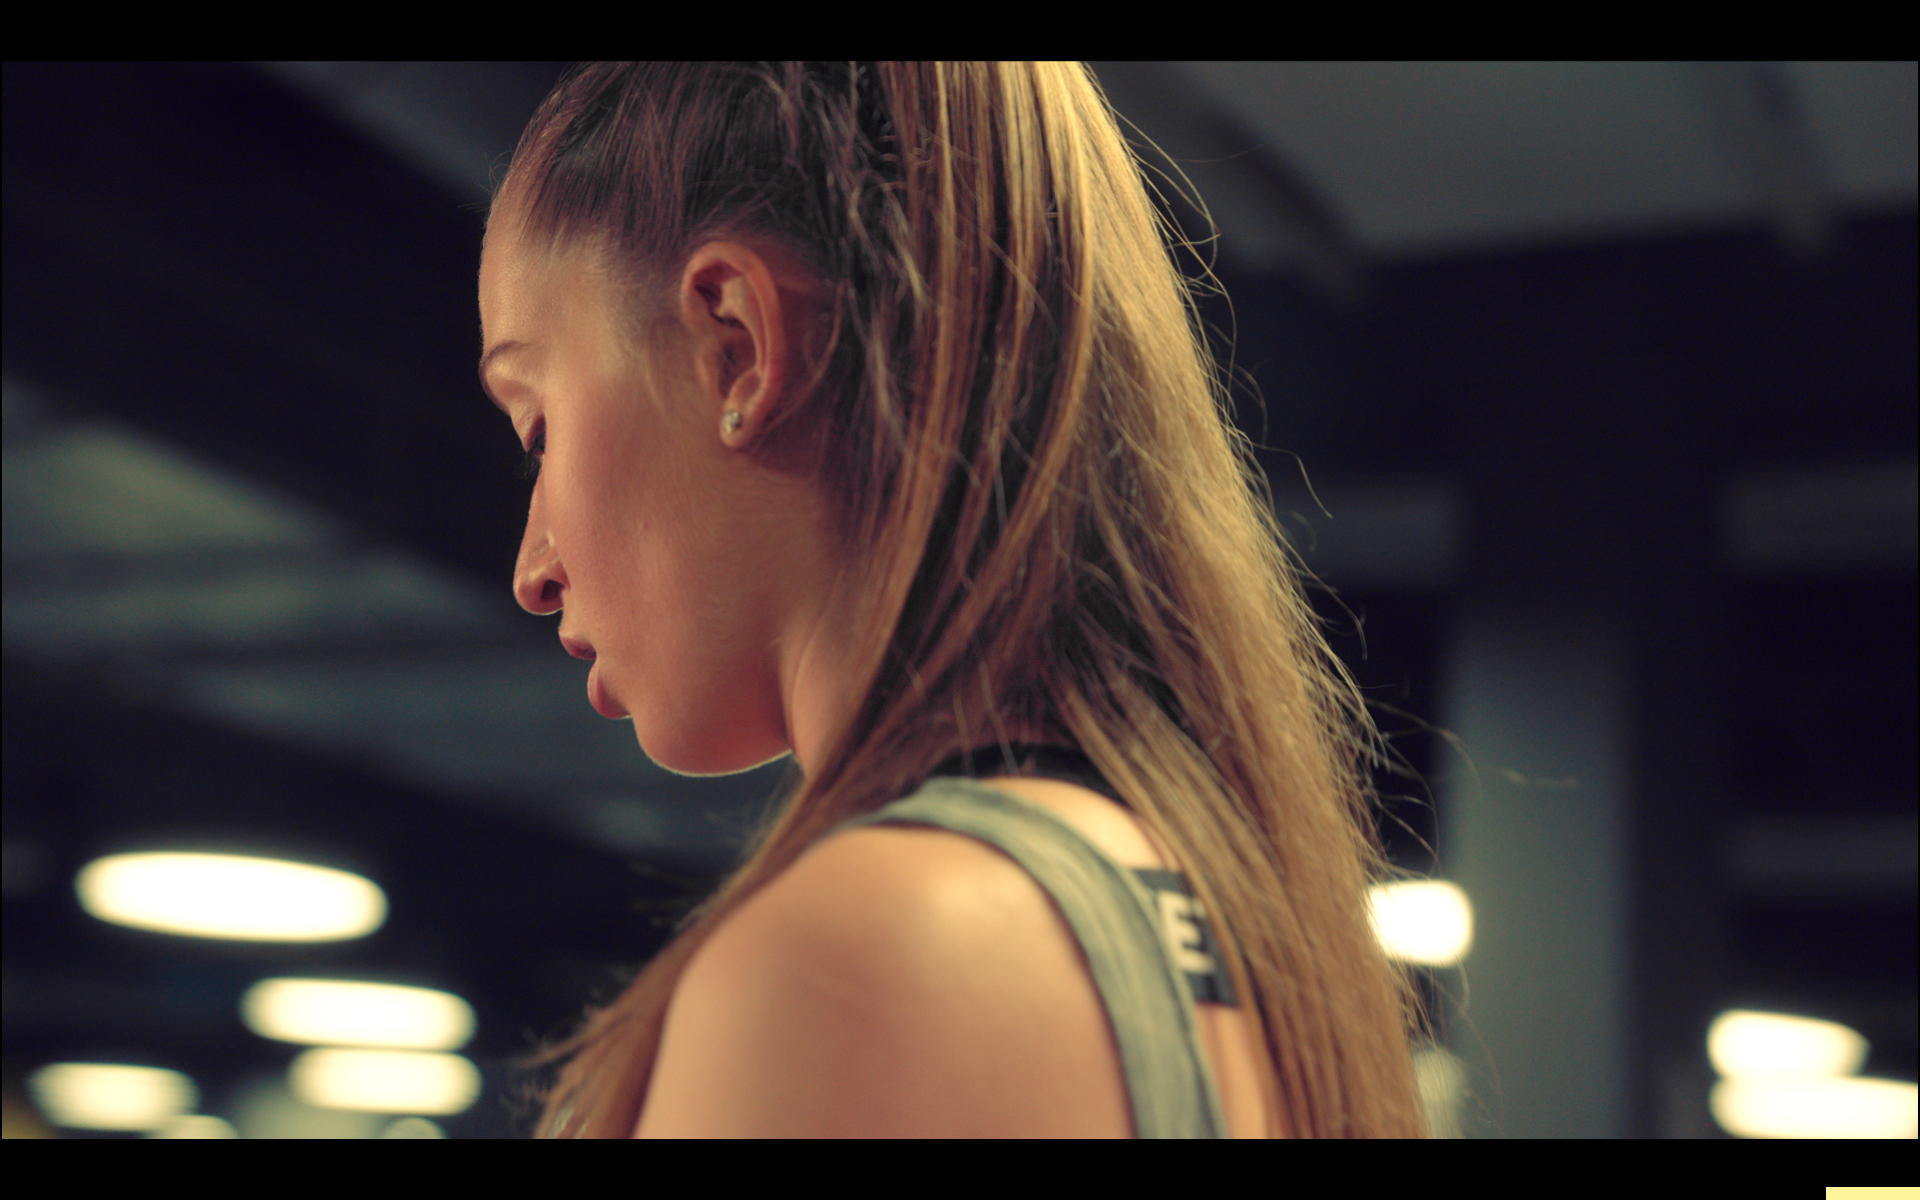 Commercial for gatorade. Jordyn Huitema working out in a gym